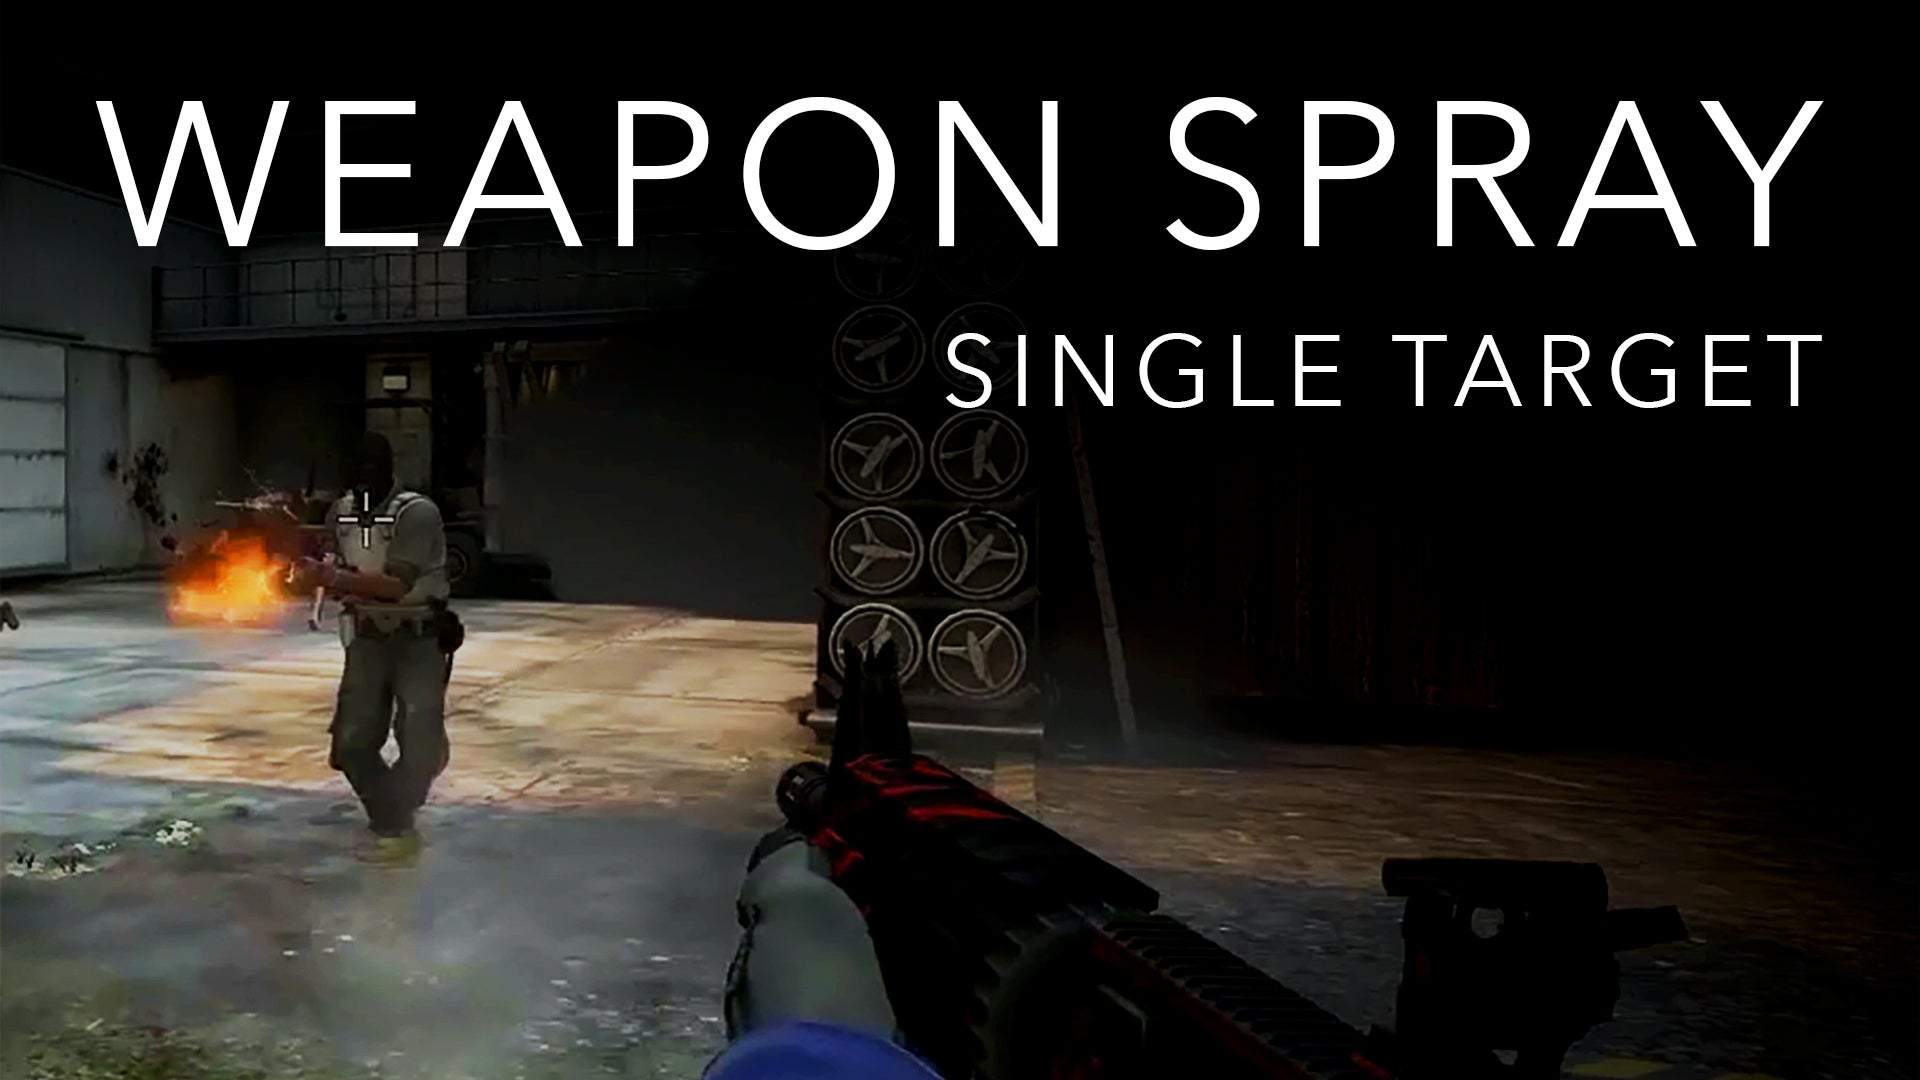 Weapon Spray for a Single, Stationary Target